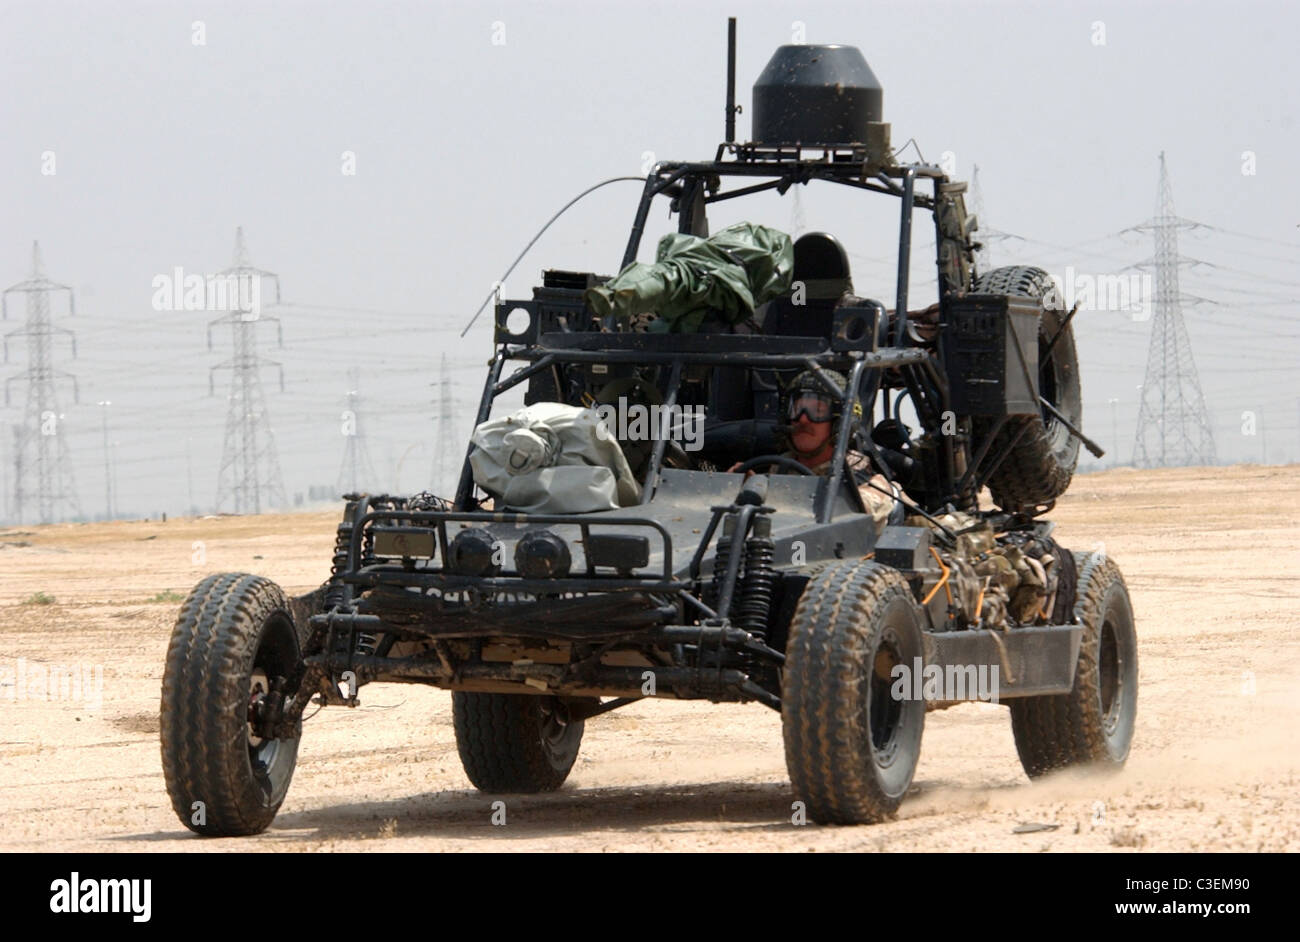 U.S. Navy SEALs team operate Desert Patrol Vehicles while preparing for an upcoming mission. - Stock Image